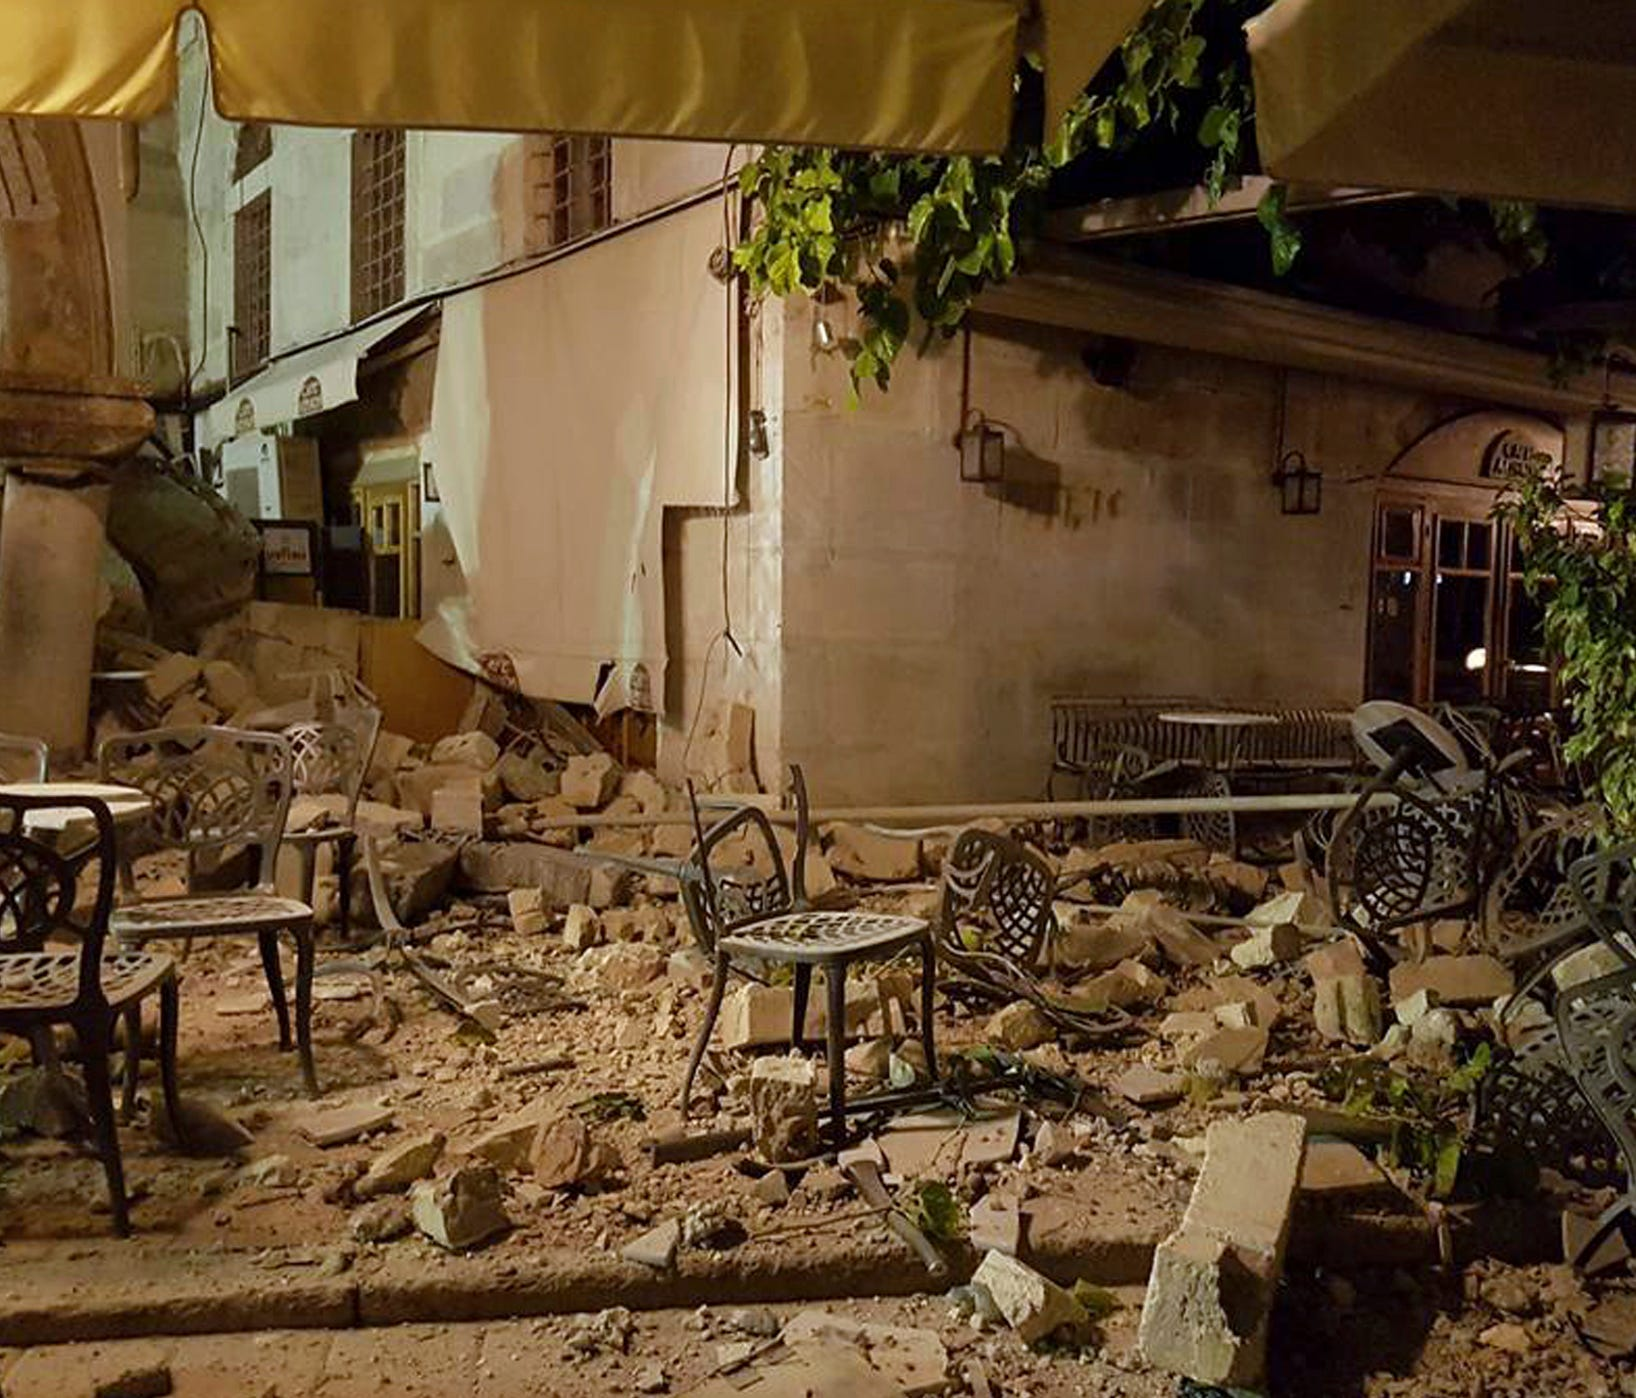 A cafe setting is littered with rubble following a strong earthquake on the Greek island of Kos early Friday, July 21, 2017.